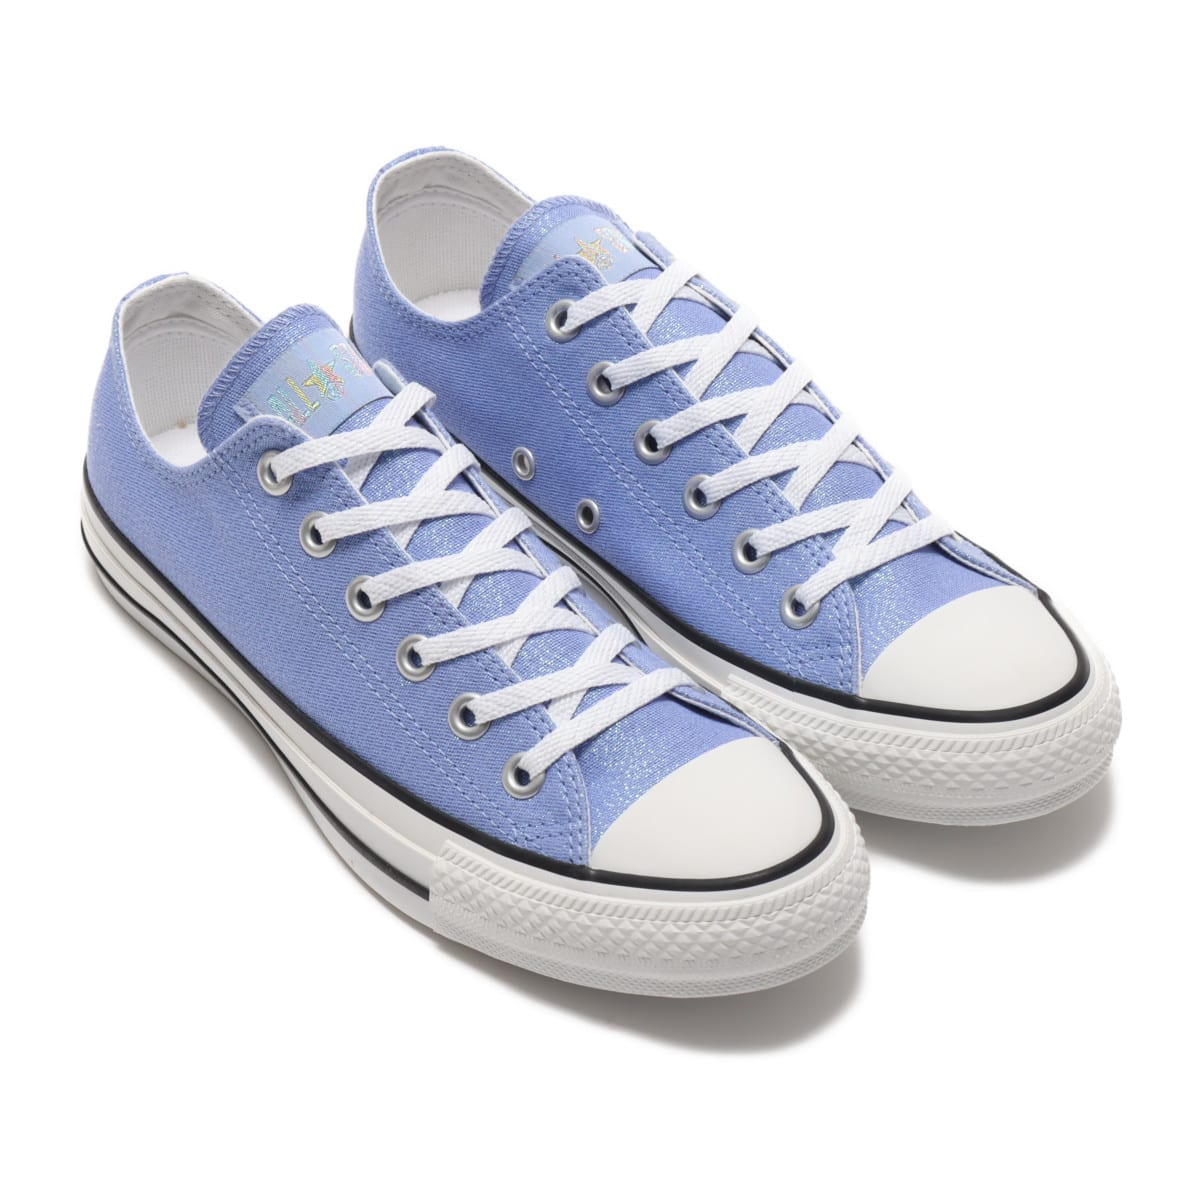 CONVERSE ALL STAR GLITTERCANVAS OX BLUE 21SS-I_photo_large